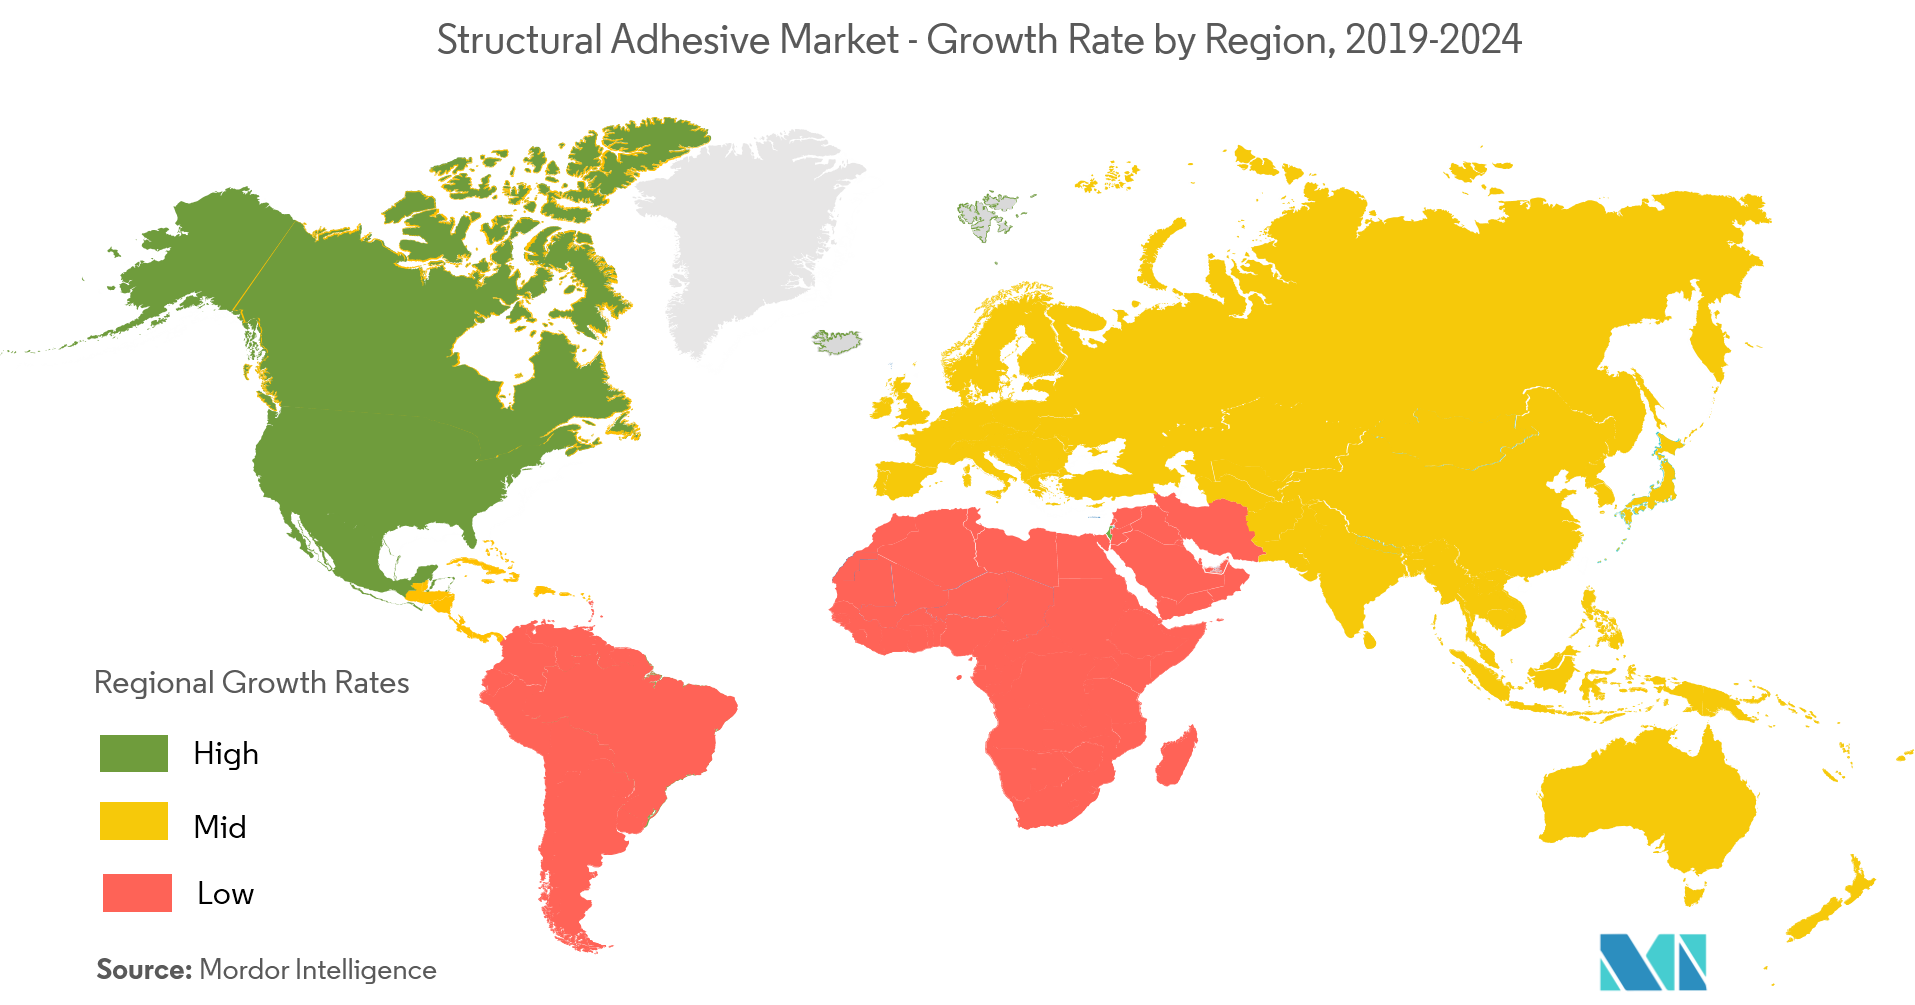 Regional - Structural Adhesive Market